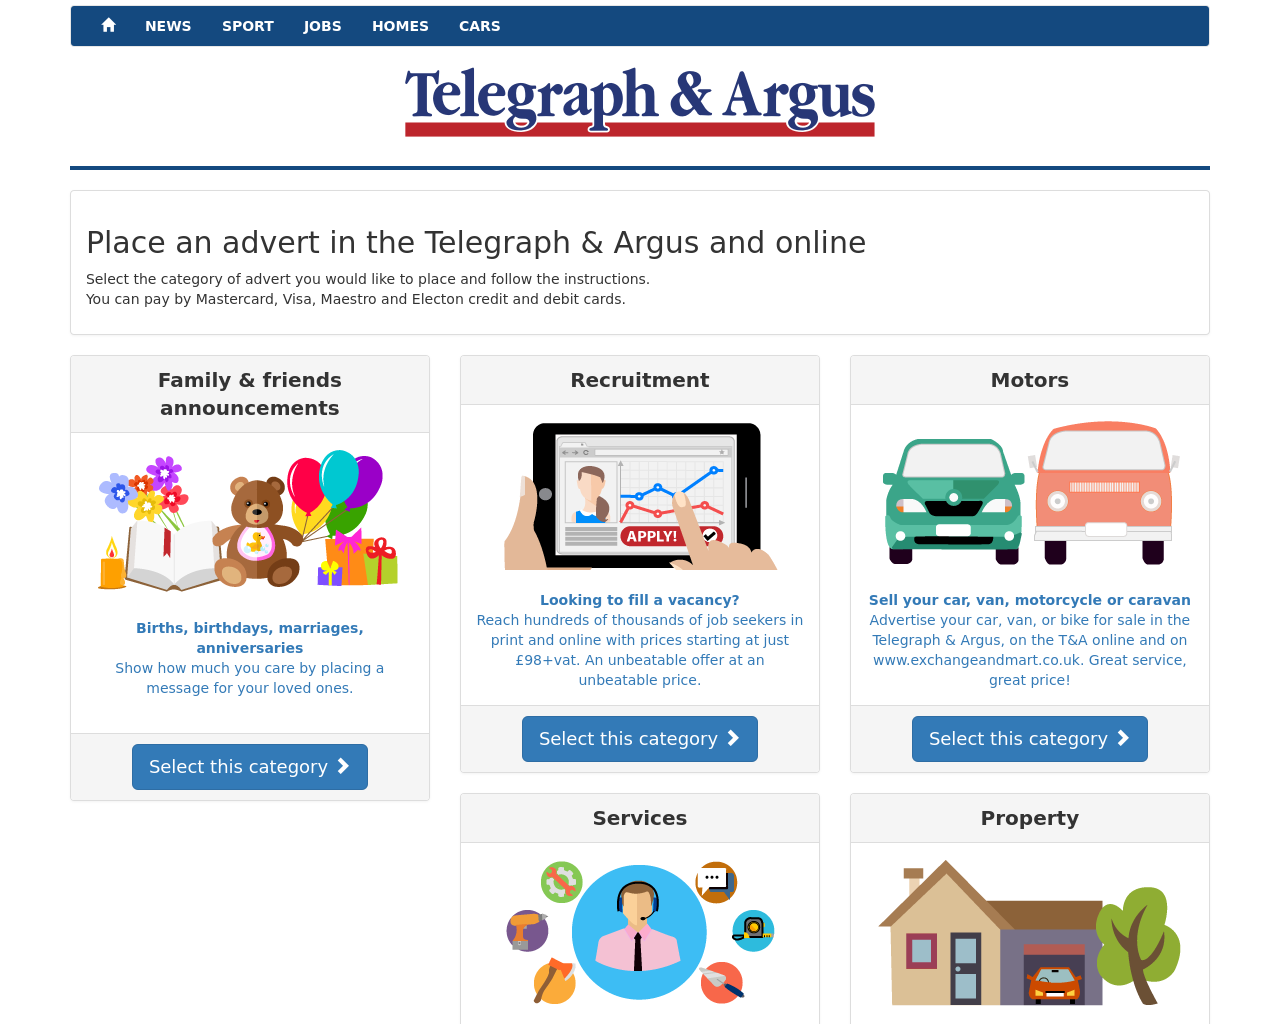 The-Telegraph-&-Argus-Advertising-Reviews-Pricing